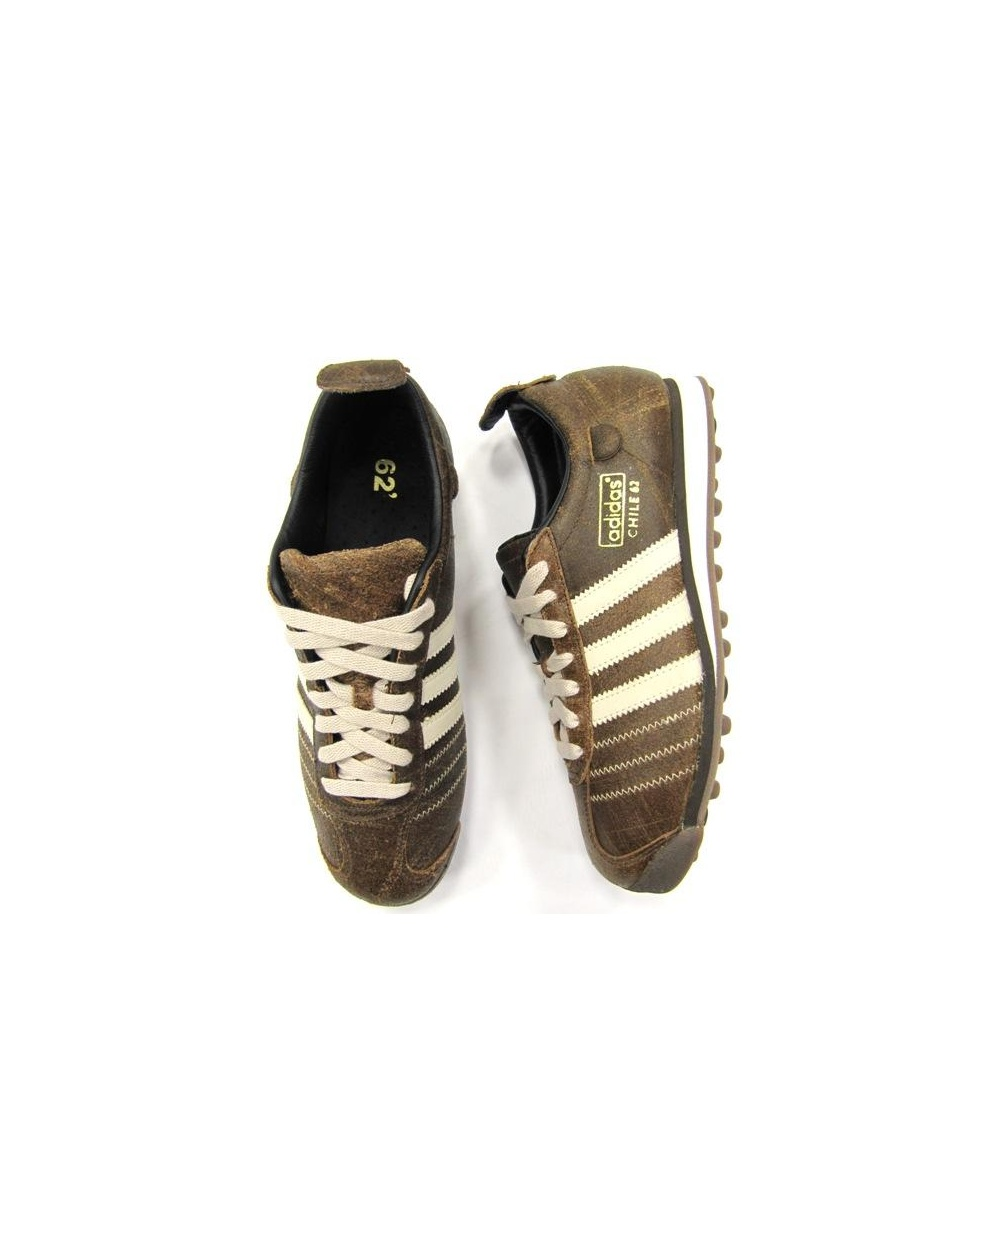 c4dacb9ccfe9 ... Adidas Chile 62 Trainers Browncream cheap price cfd4c a3141  Vintage ...